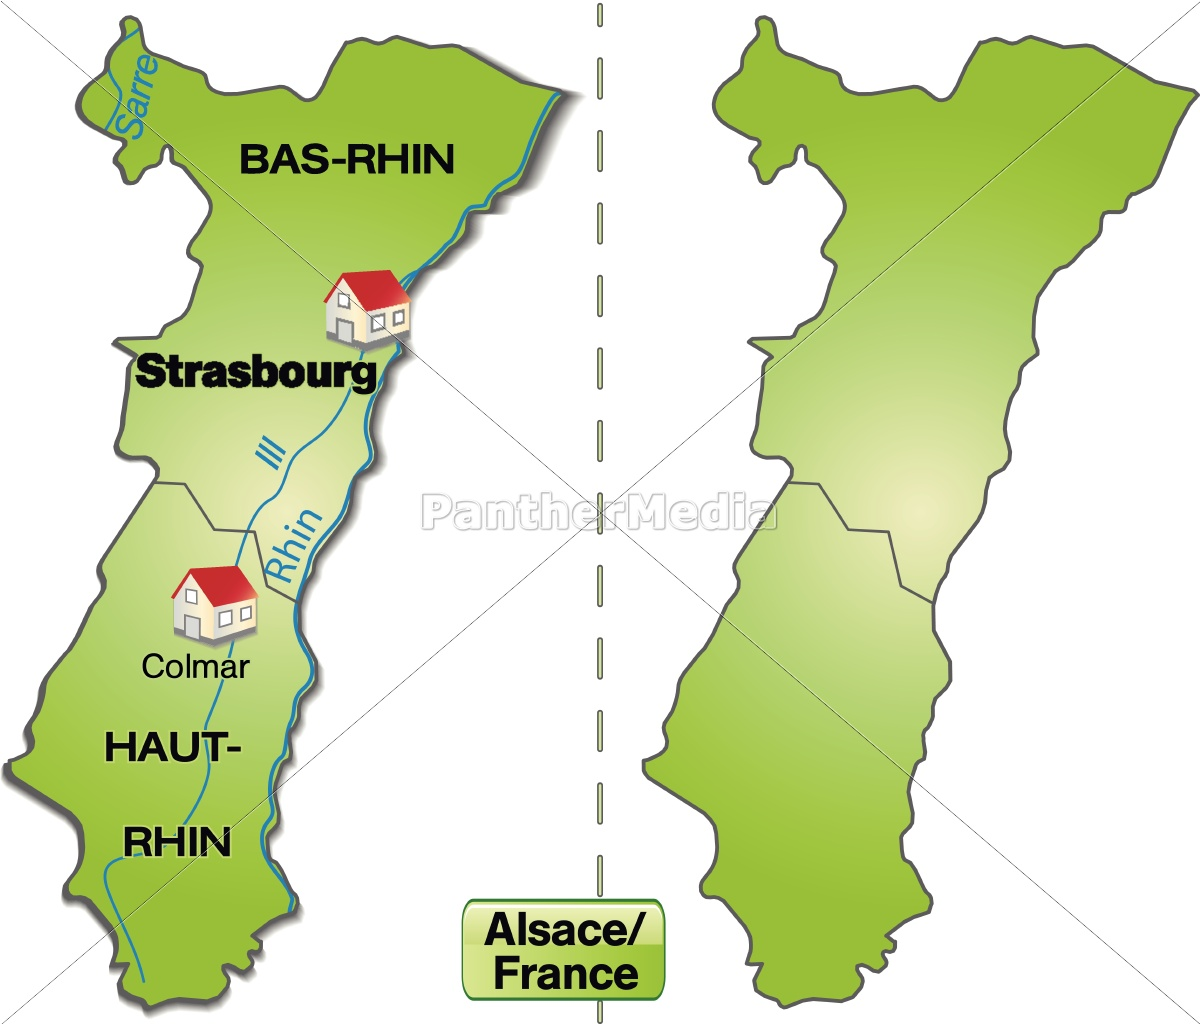 Island Map Of Alsace With Limits In Internet Green Stock Photo